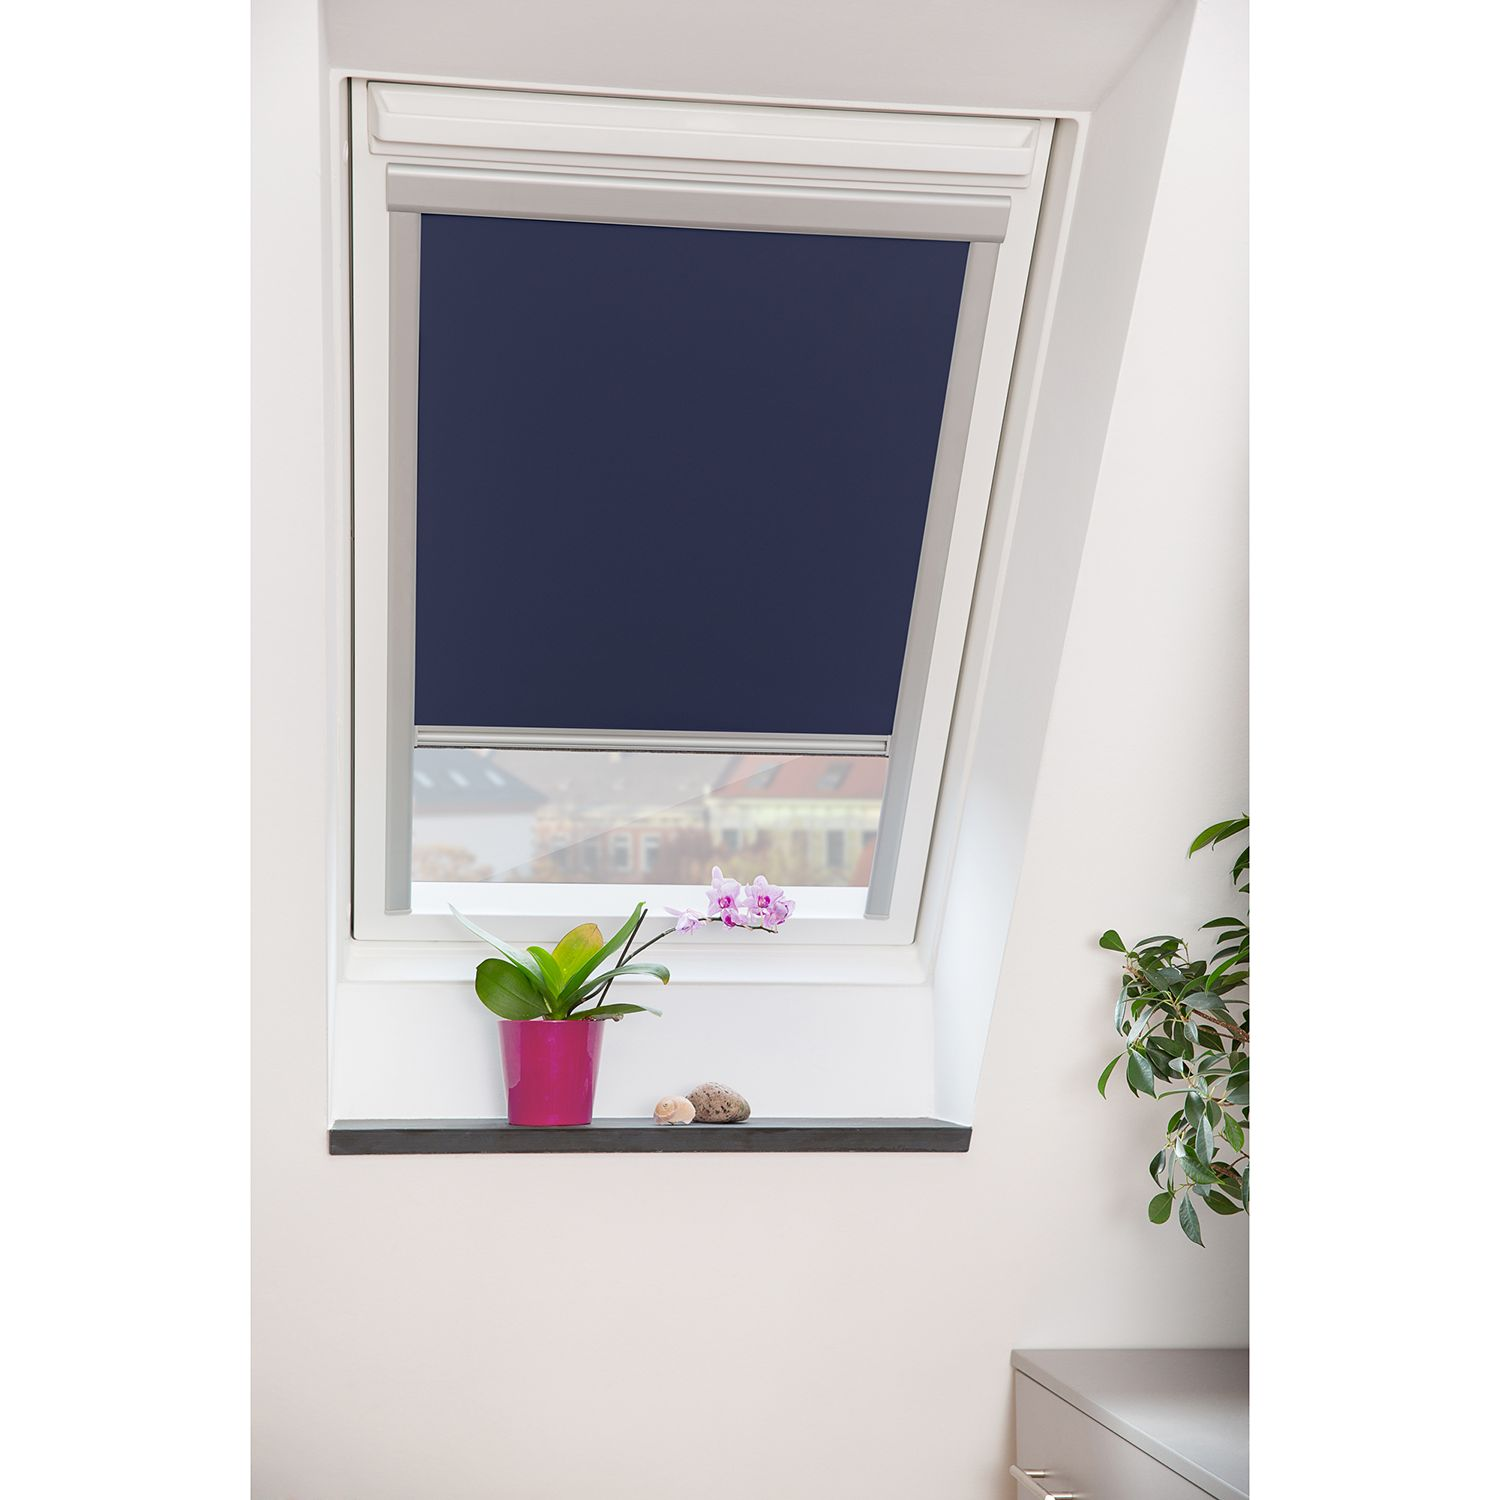 Dachfensterrollo Skylight, twentyfour